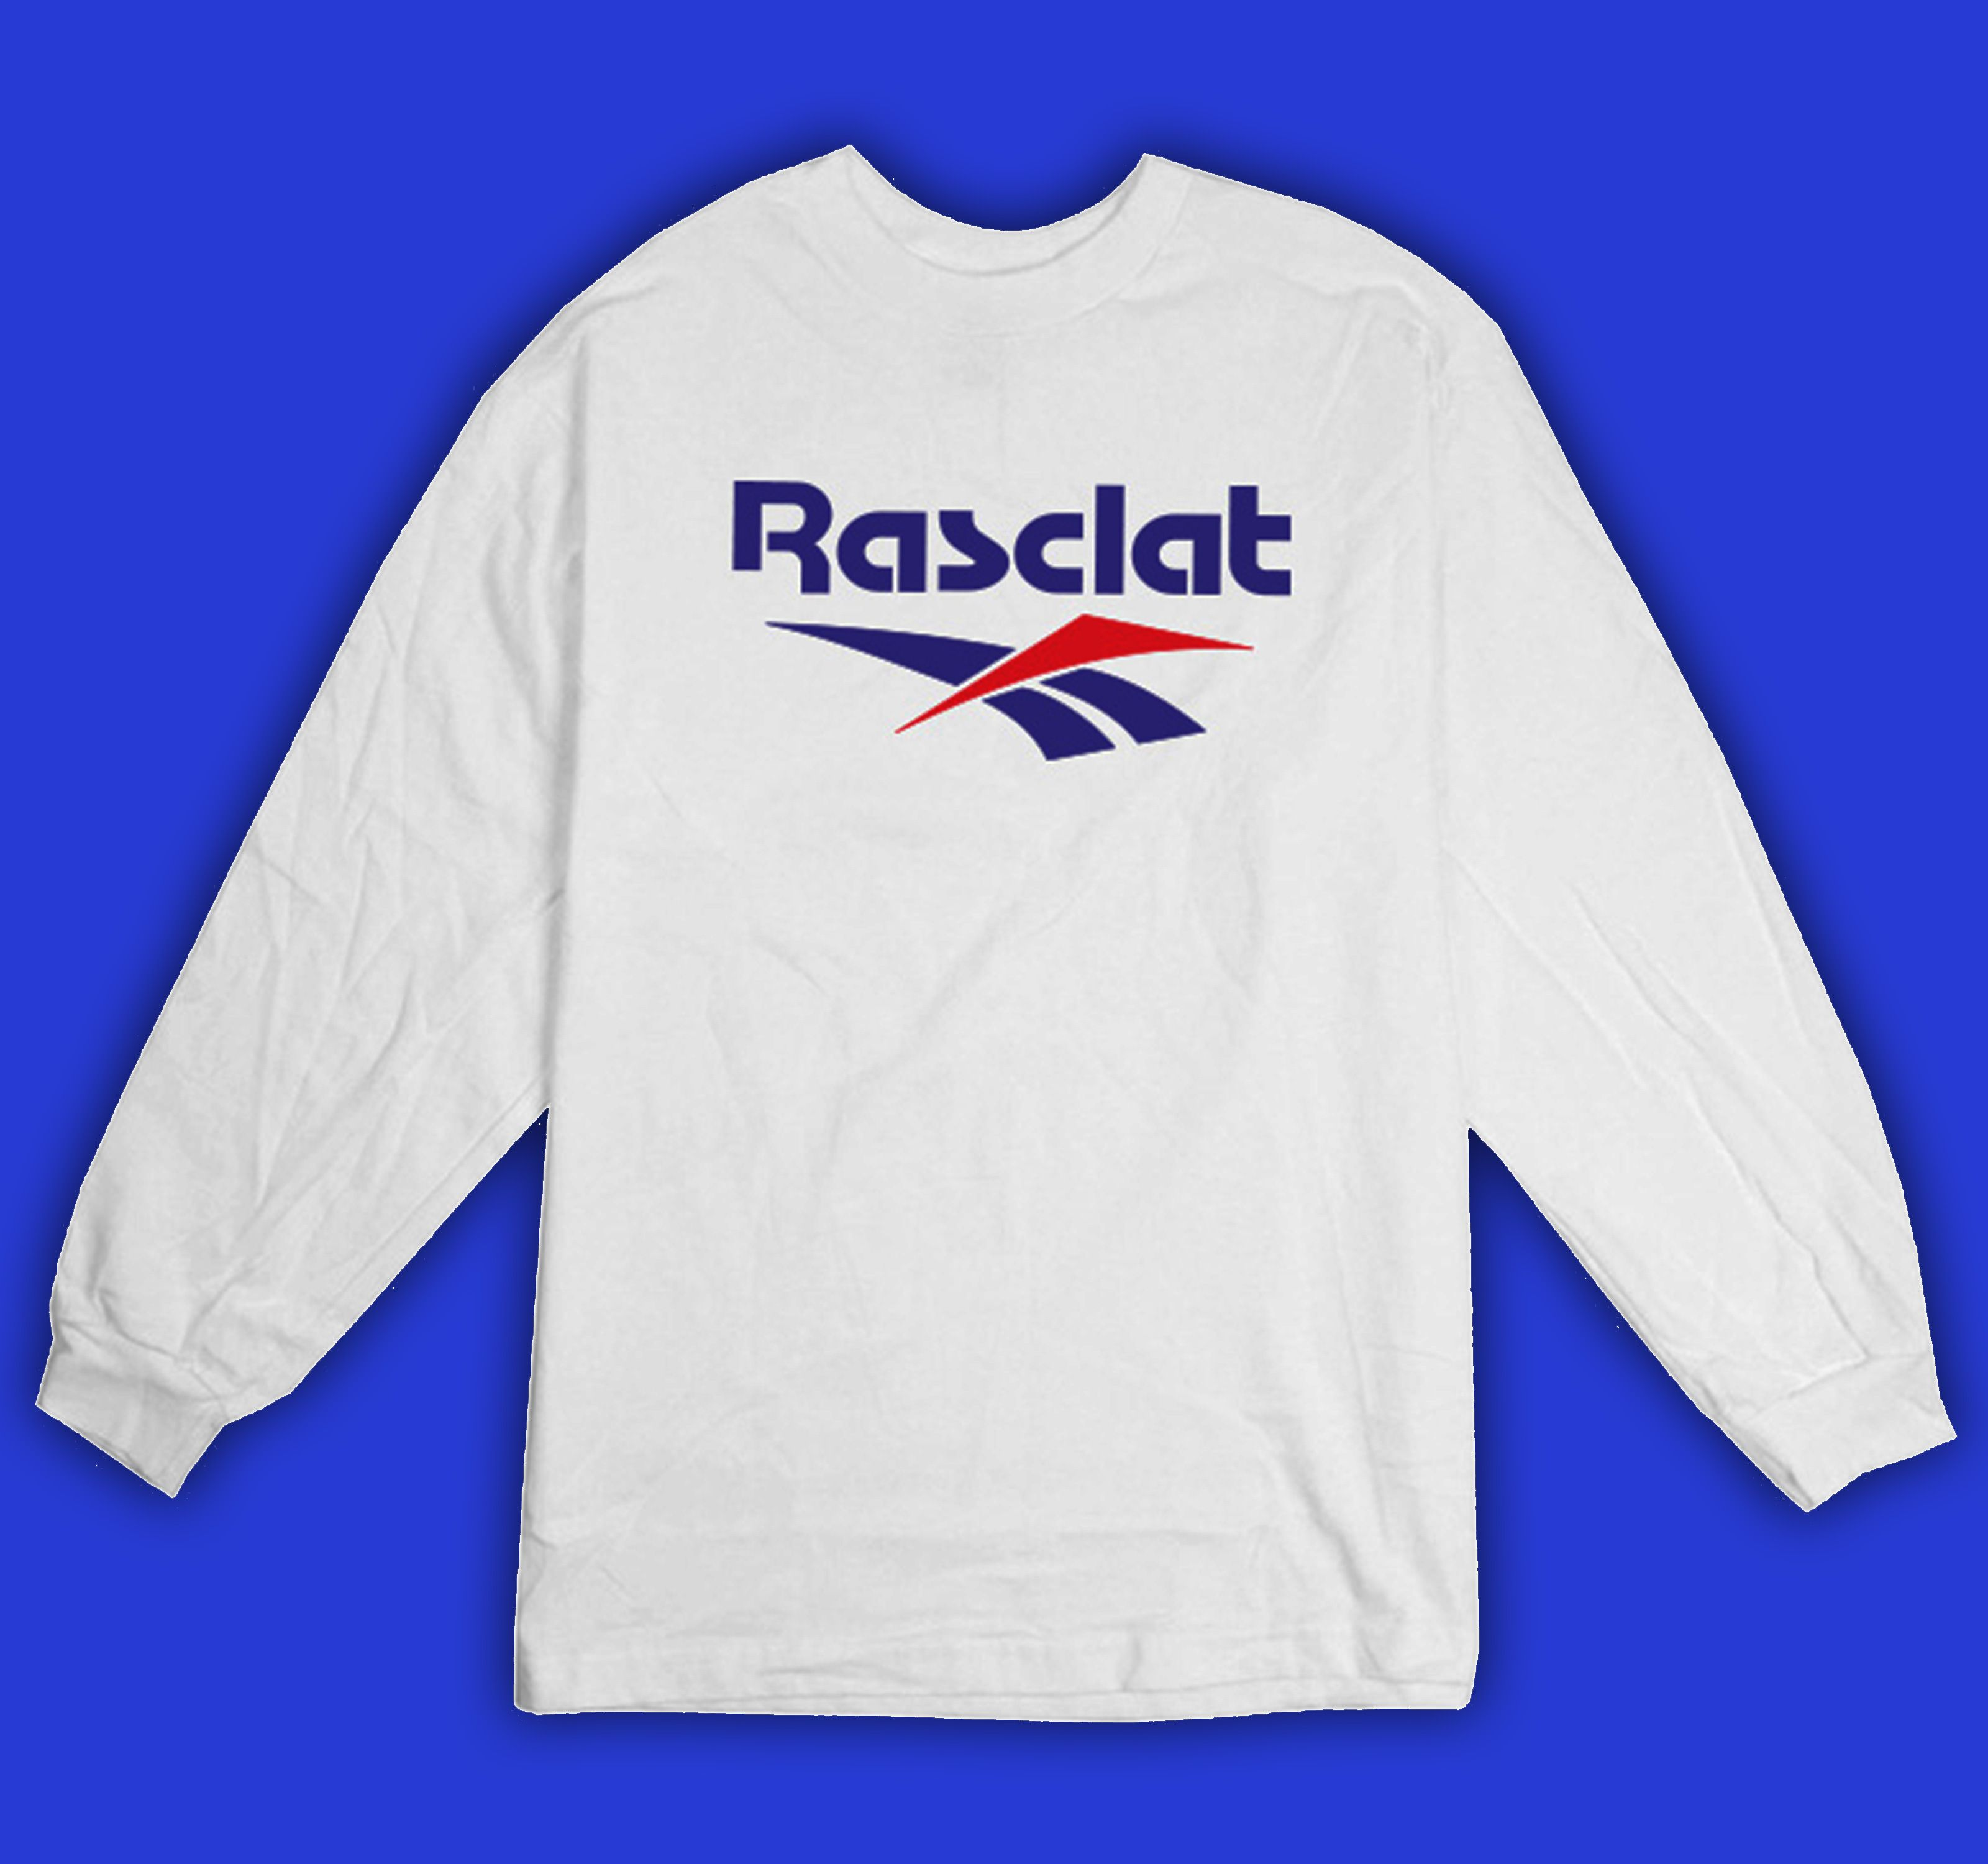 Copping this garm will make your life better in areas such as: Swag game Spitting better bars